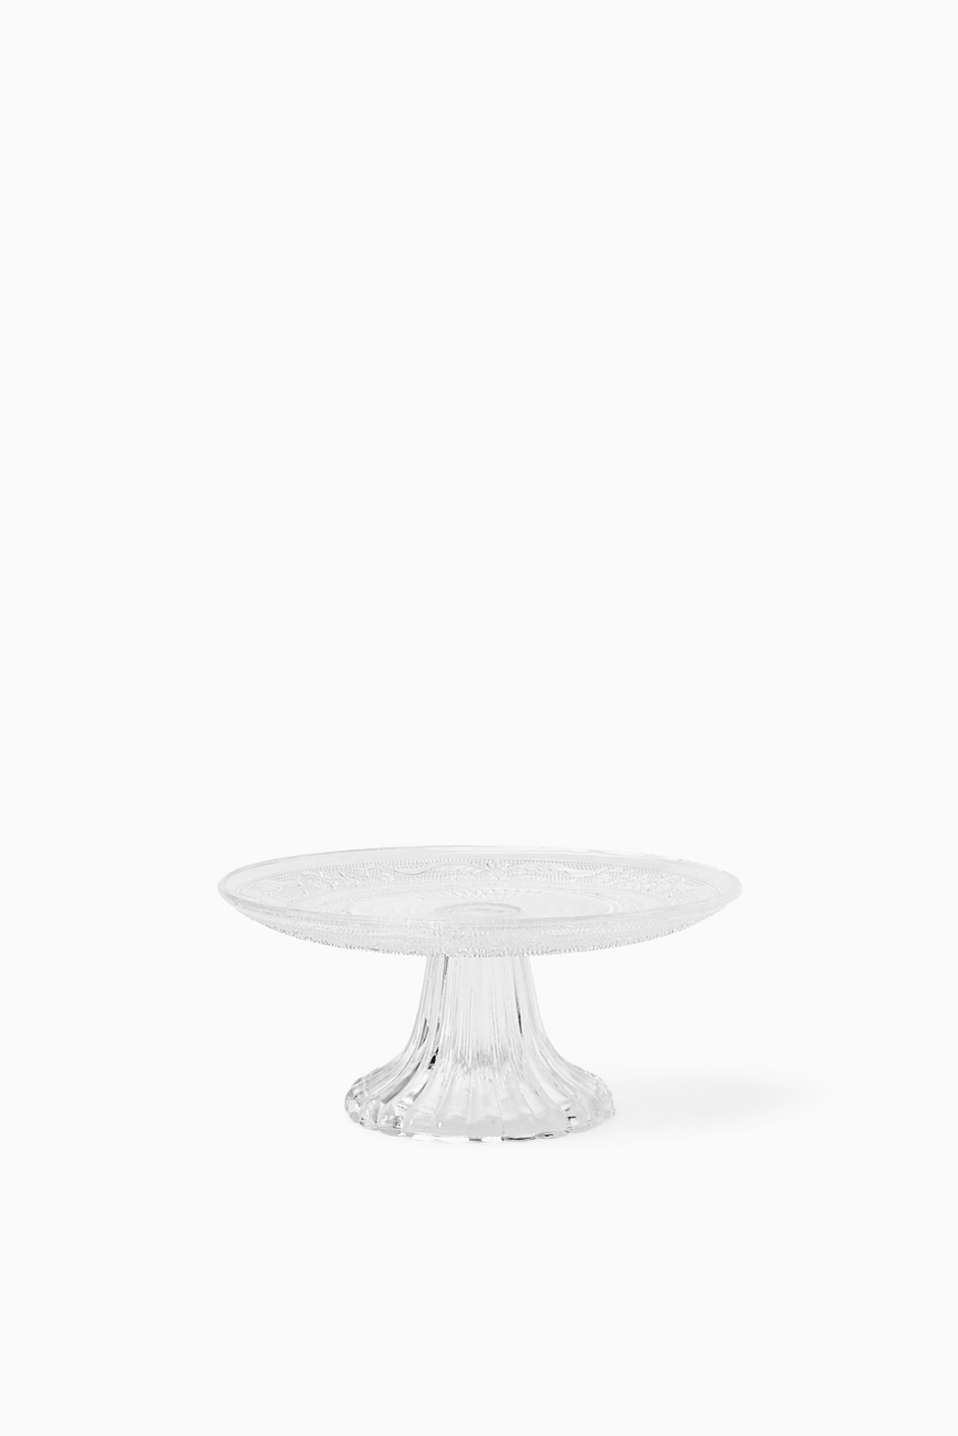 Patterned cake stand with a footed base, made of glass